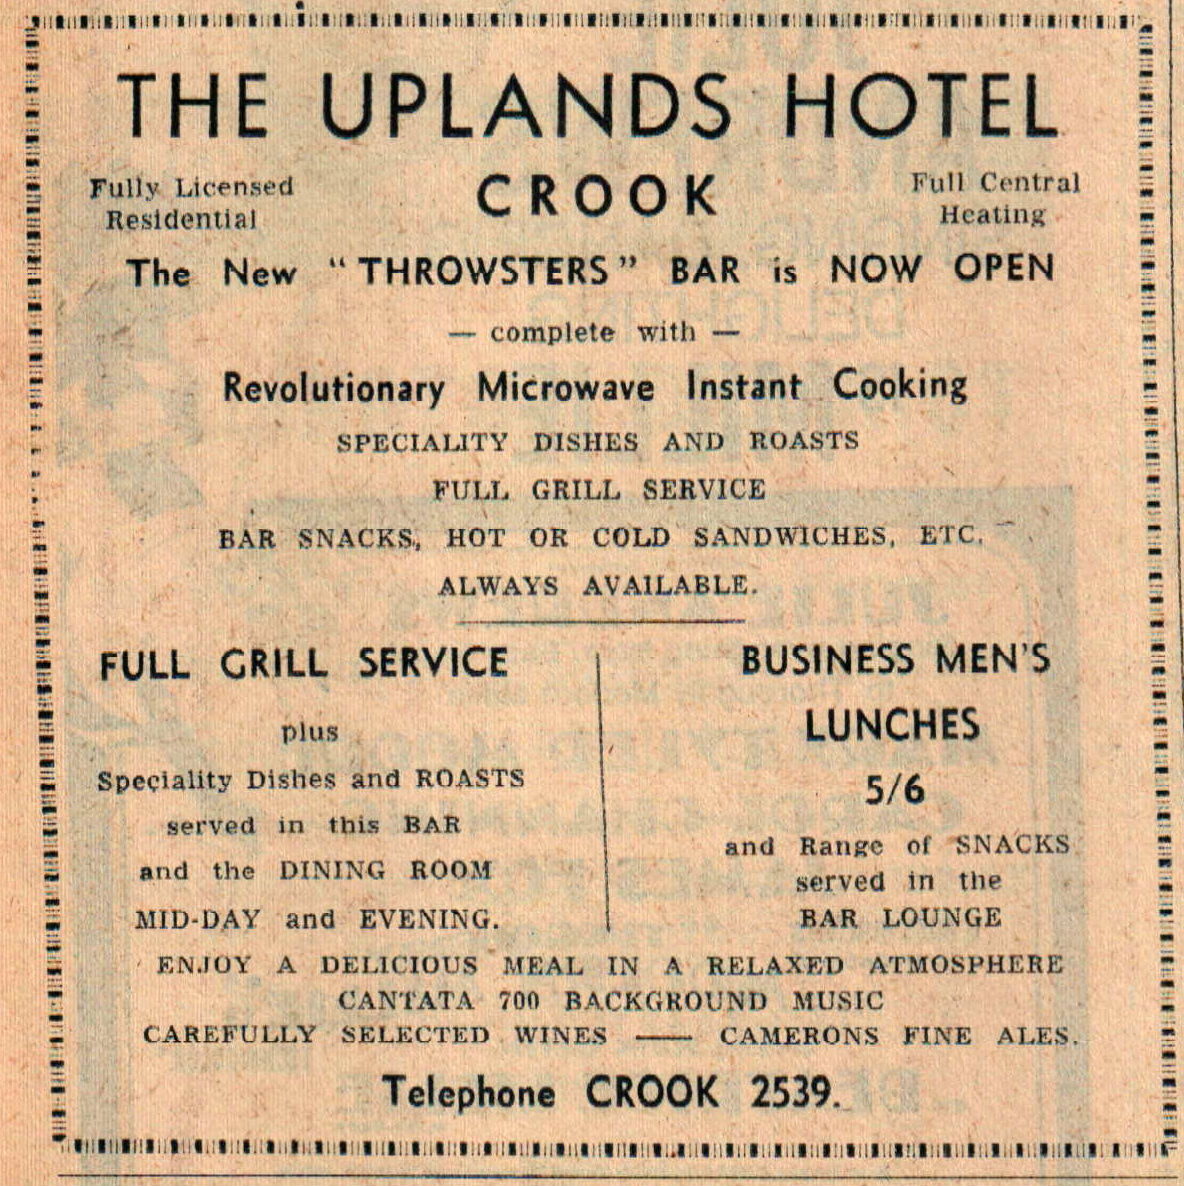 TASTY ADVERT: The Uplands Hotel boasts of